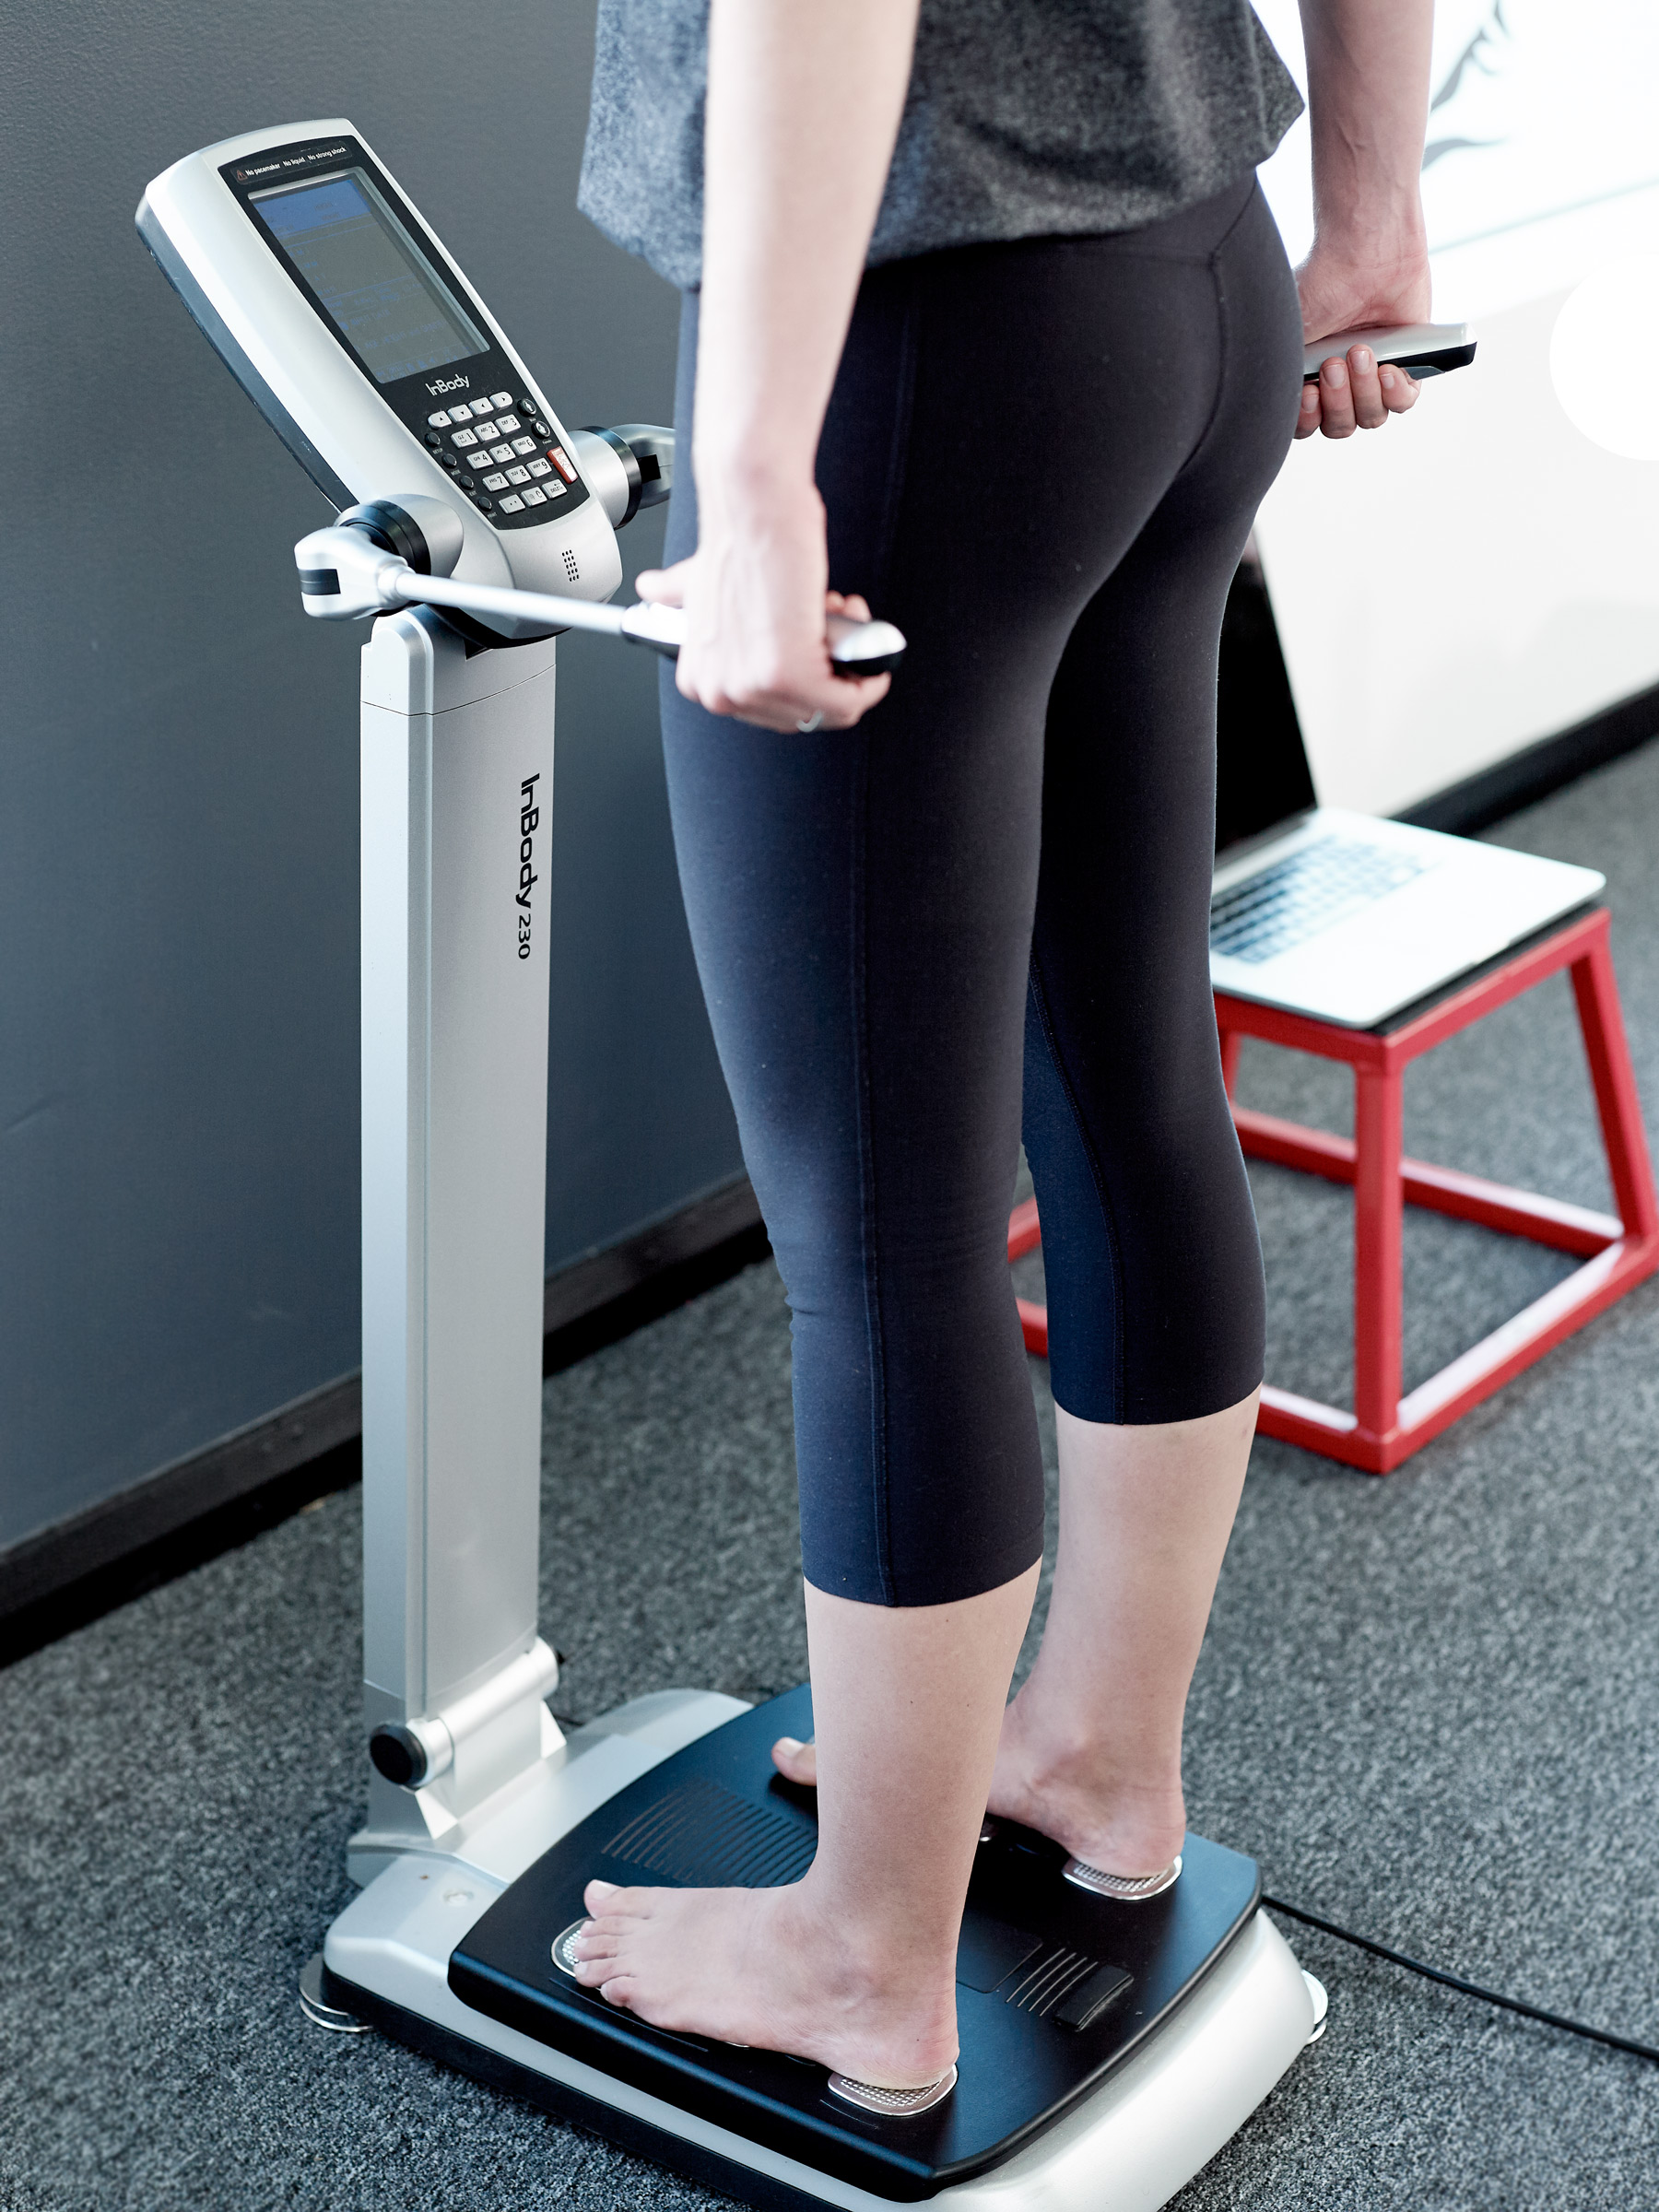 The Body Composition Analyser in action